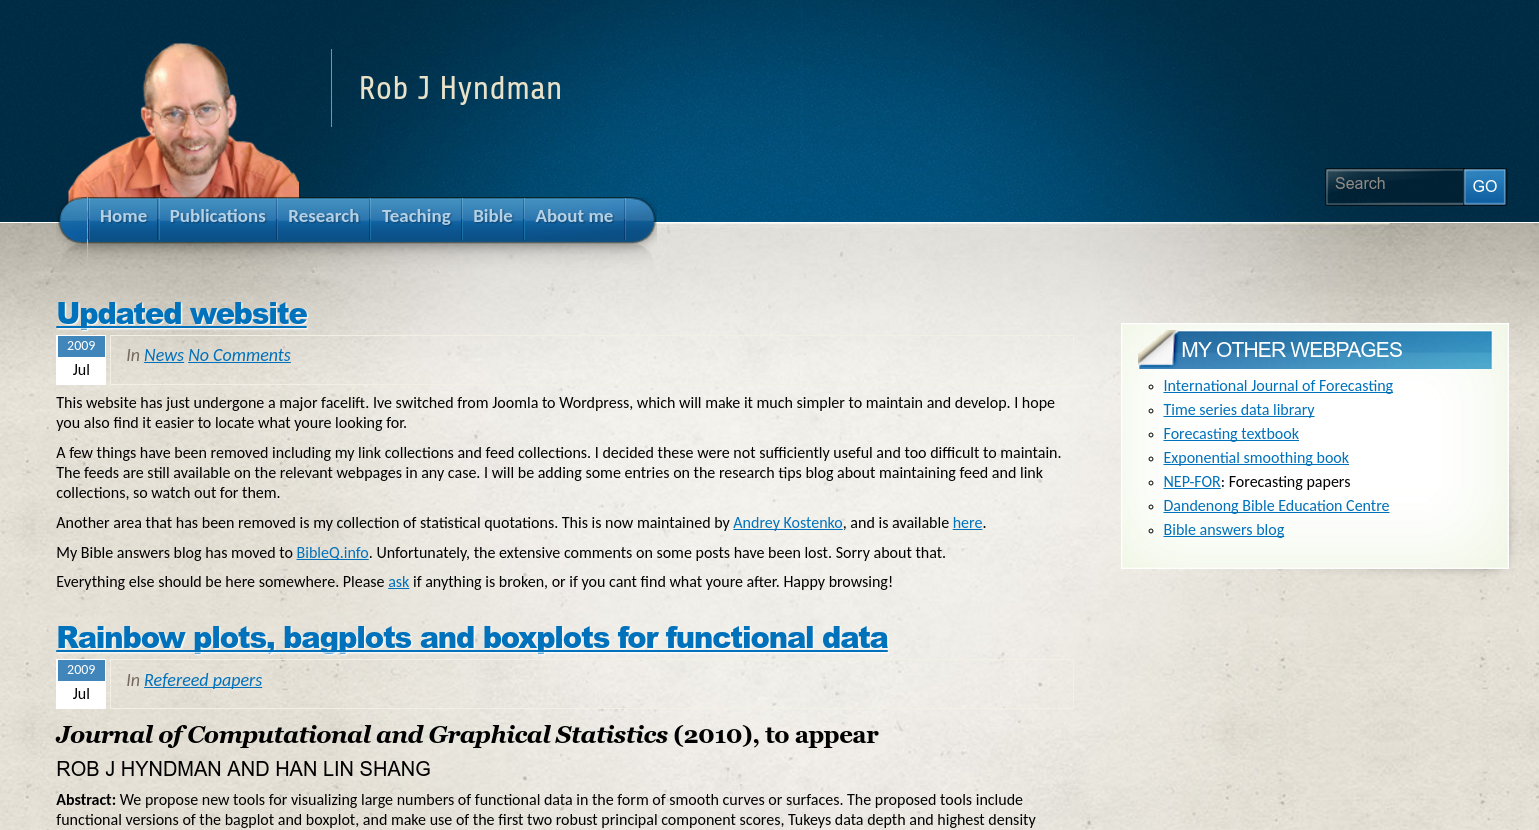 robjhyndman.com in 2009 on Wordpress